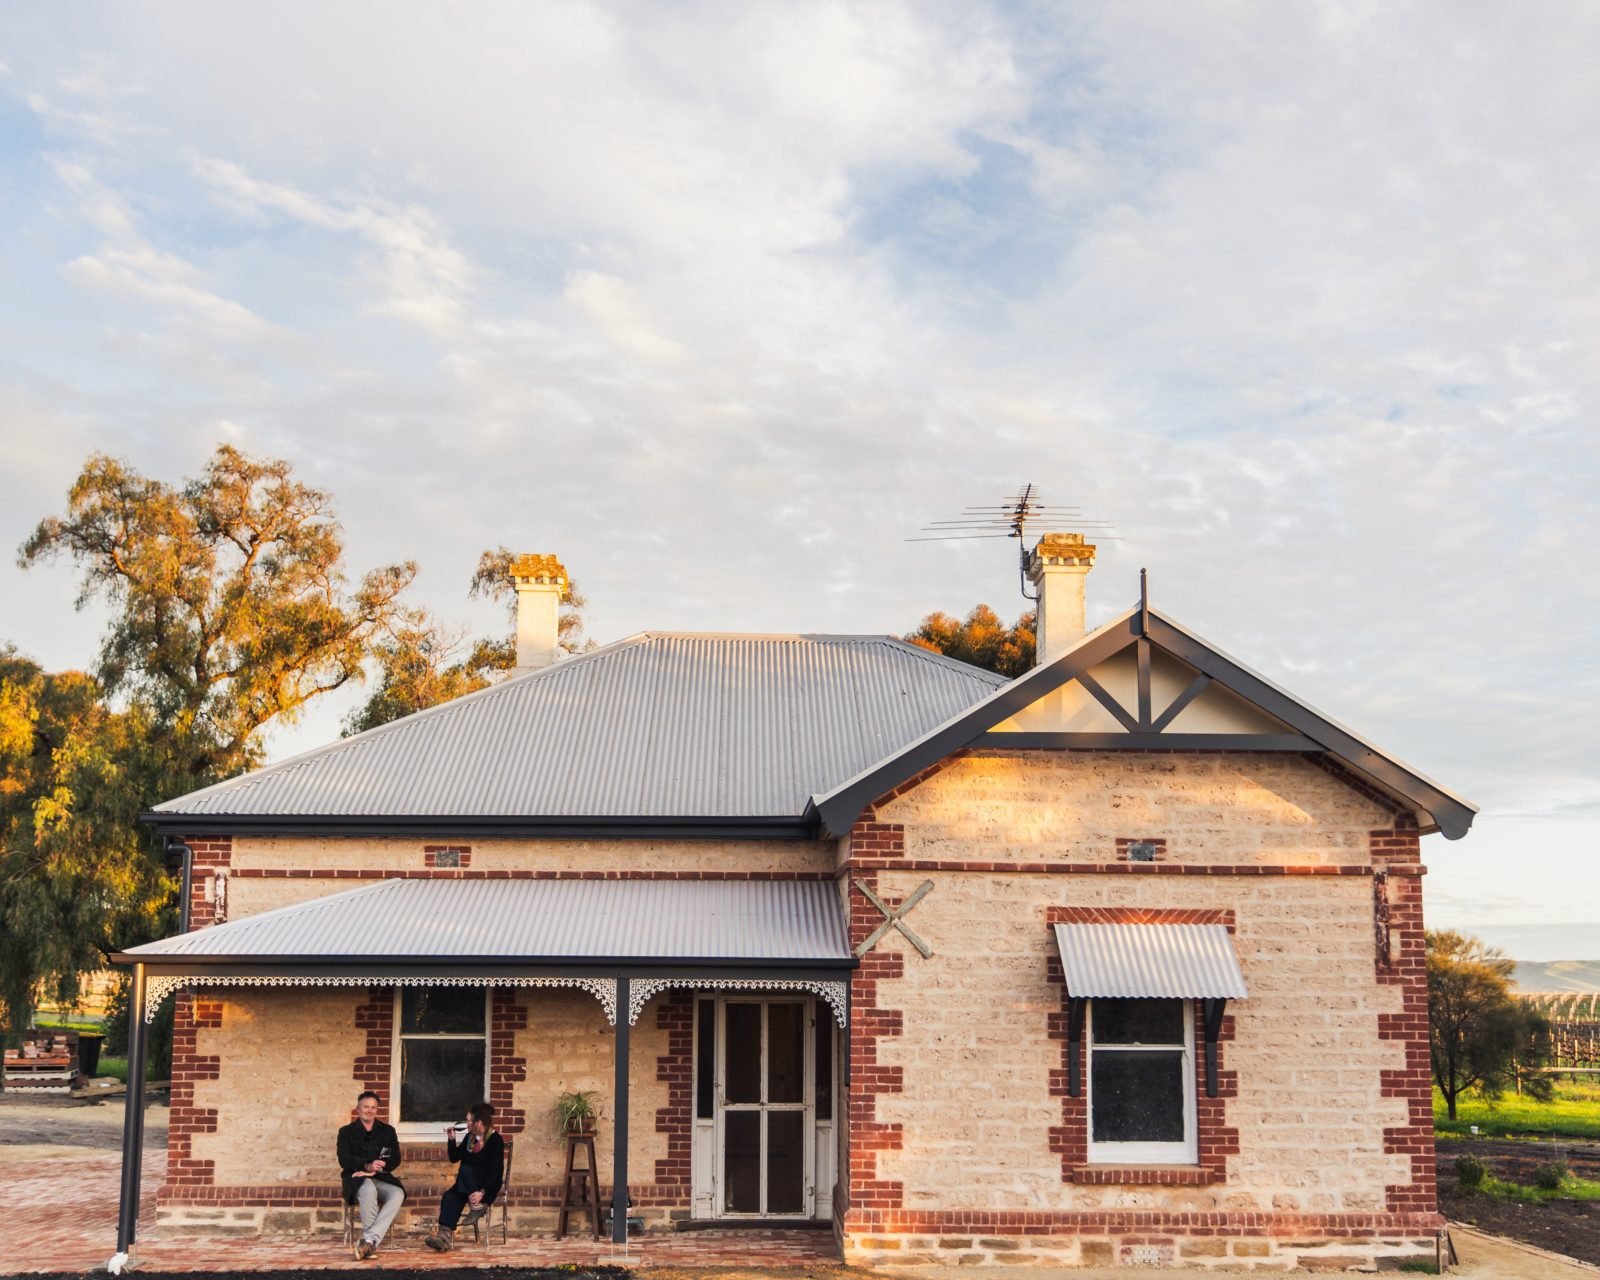 Lino Ramble Cellar Door situated in a little historic 3 roomed cottage